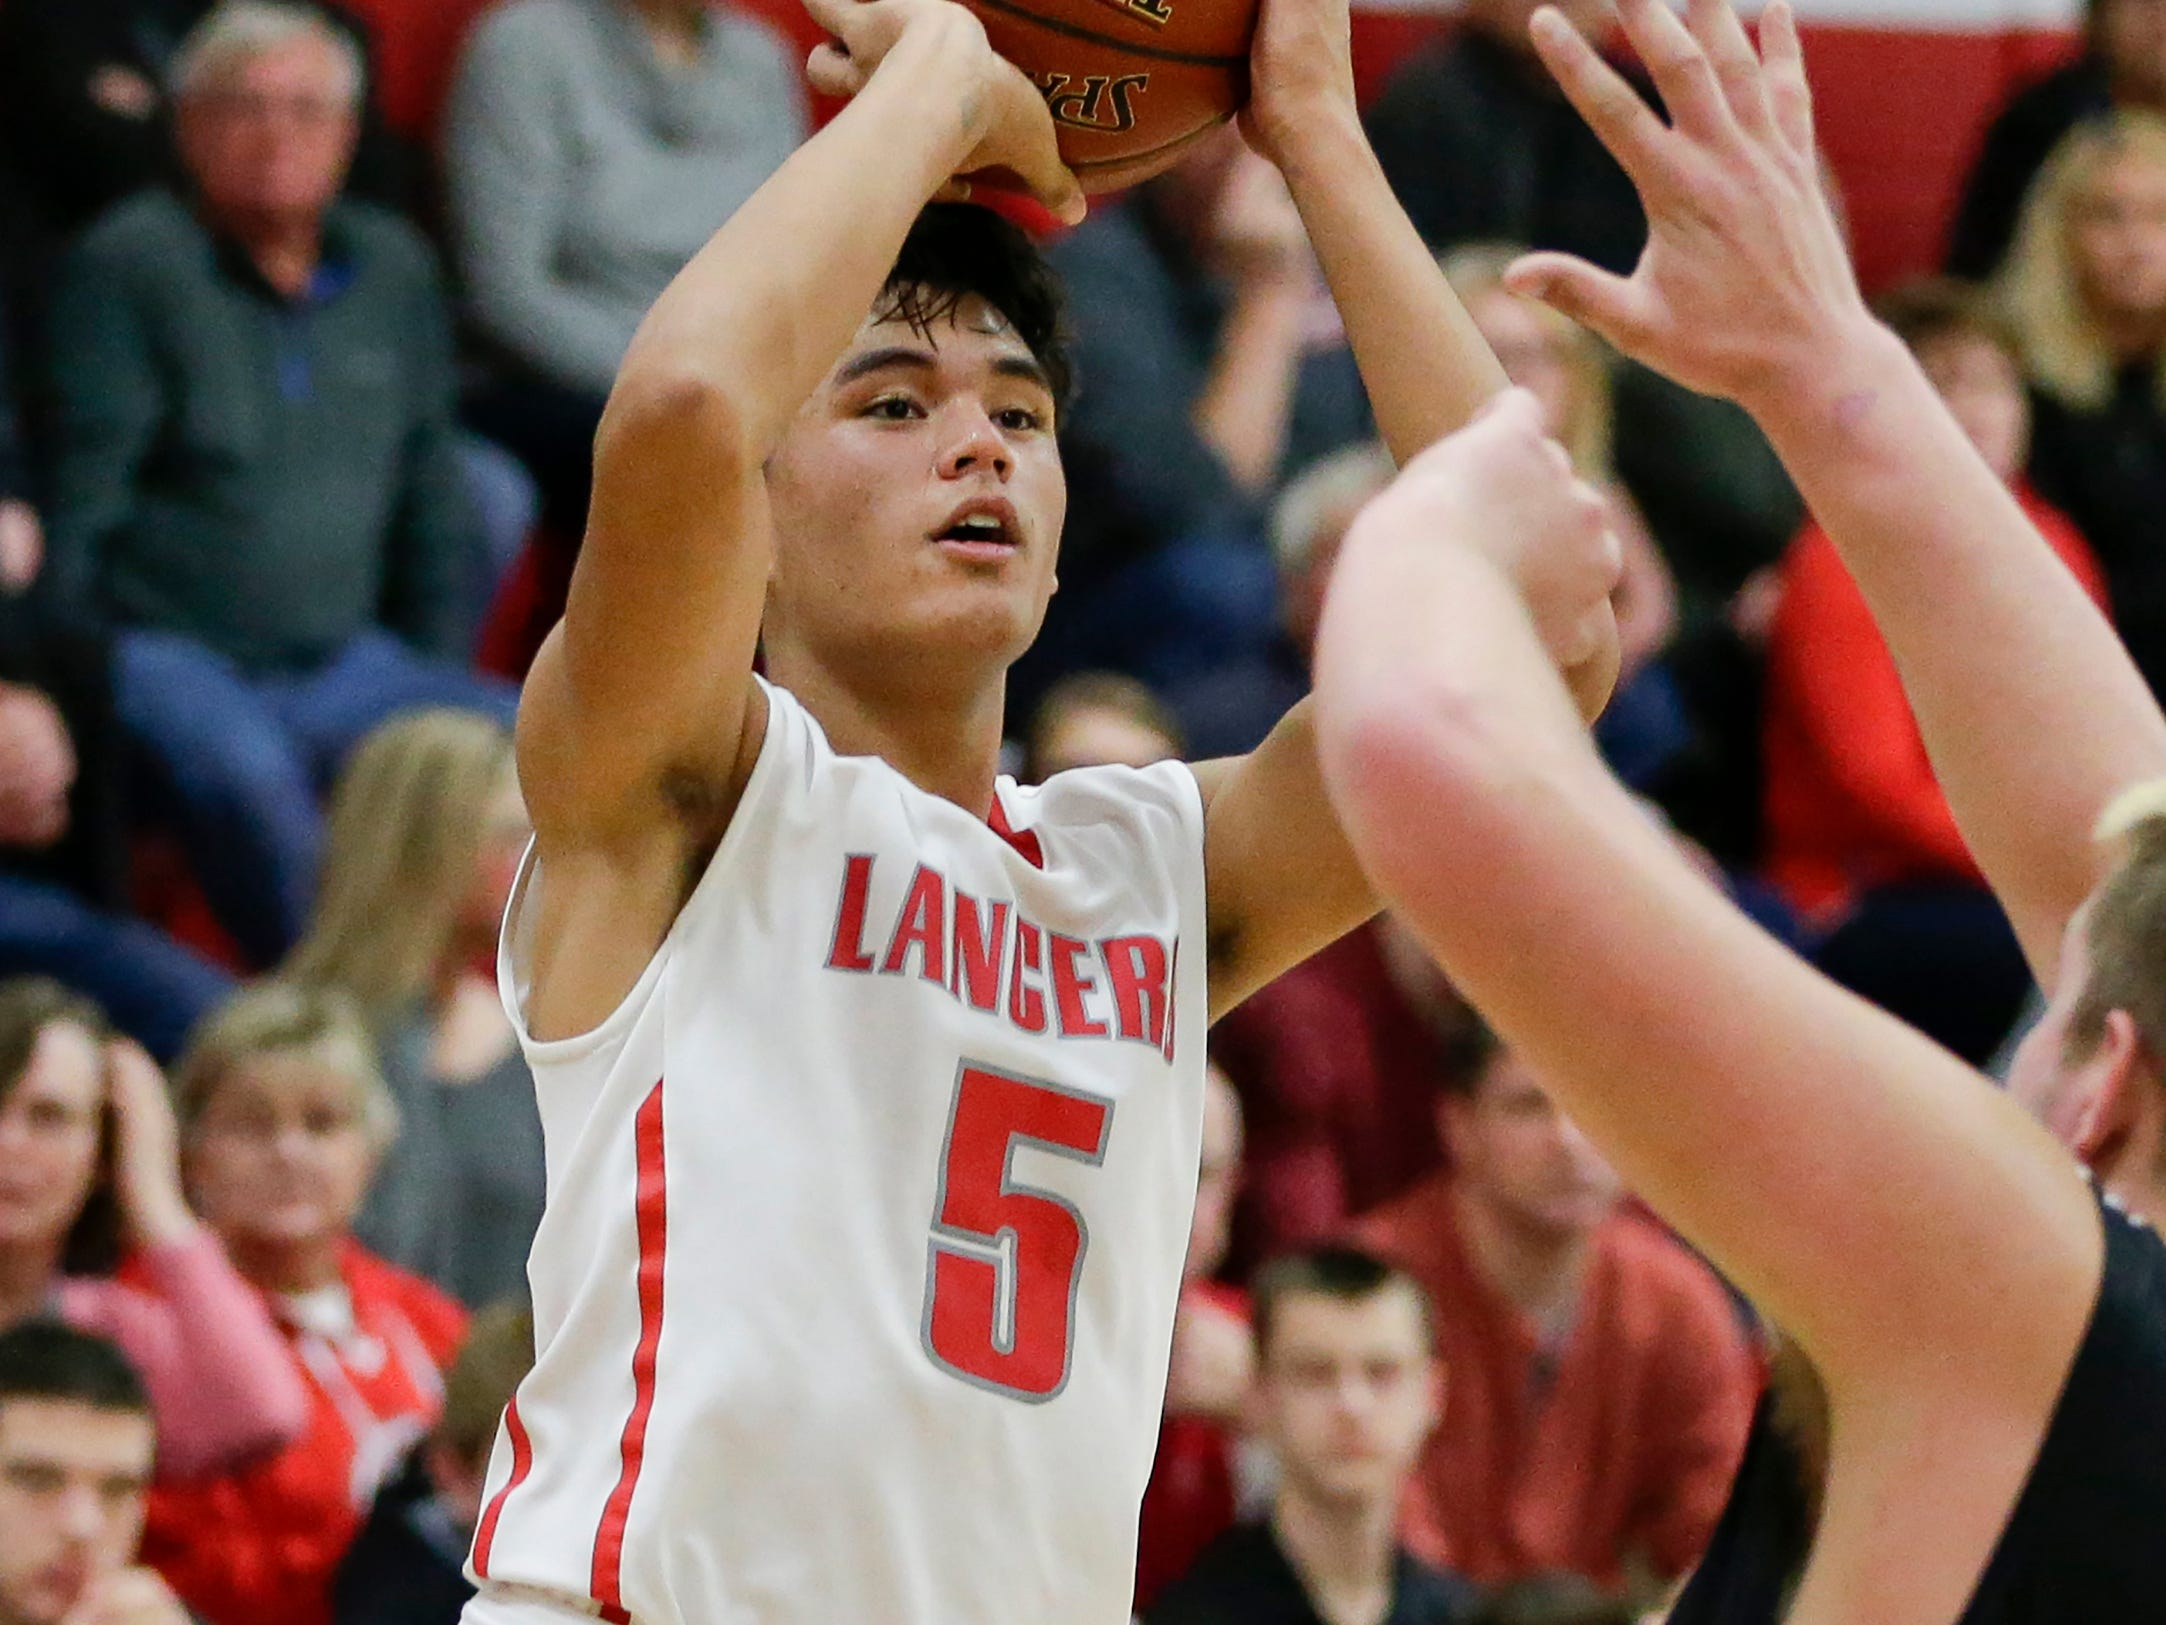 Manitowoc Lutheran's Santana Lomibao shoots against Reedsville at Manitowoc Lutheran High School Thursday, December 20, 2018, in Manitowoc, Wis. Joshua Clark/USA TODAY NETWORK-Wisconsin